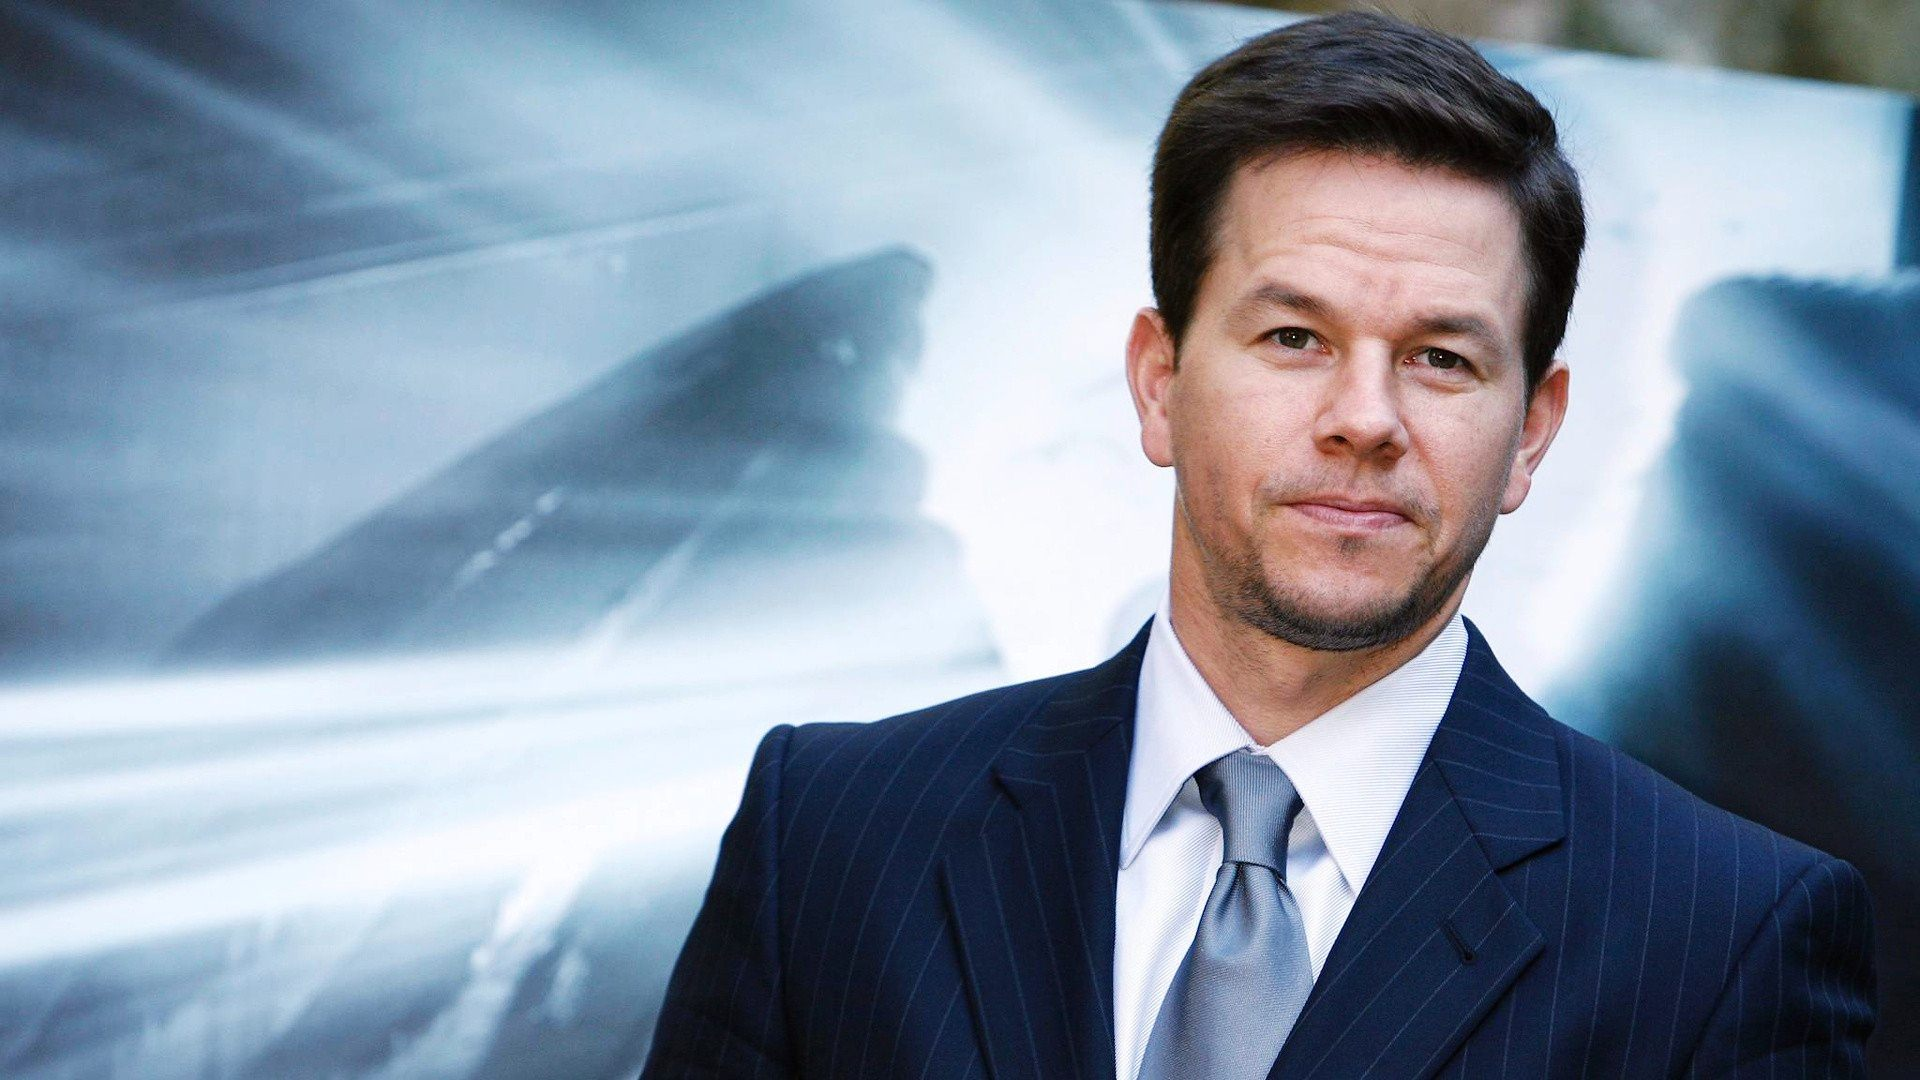 mark wahlberg wallpapers high resolution and quality download